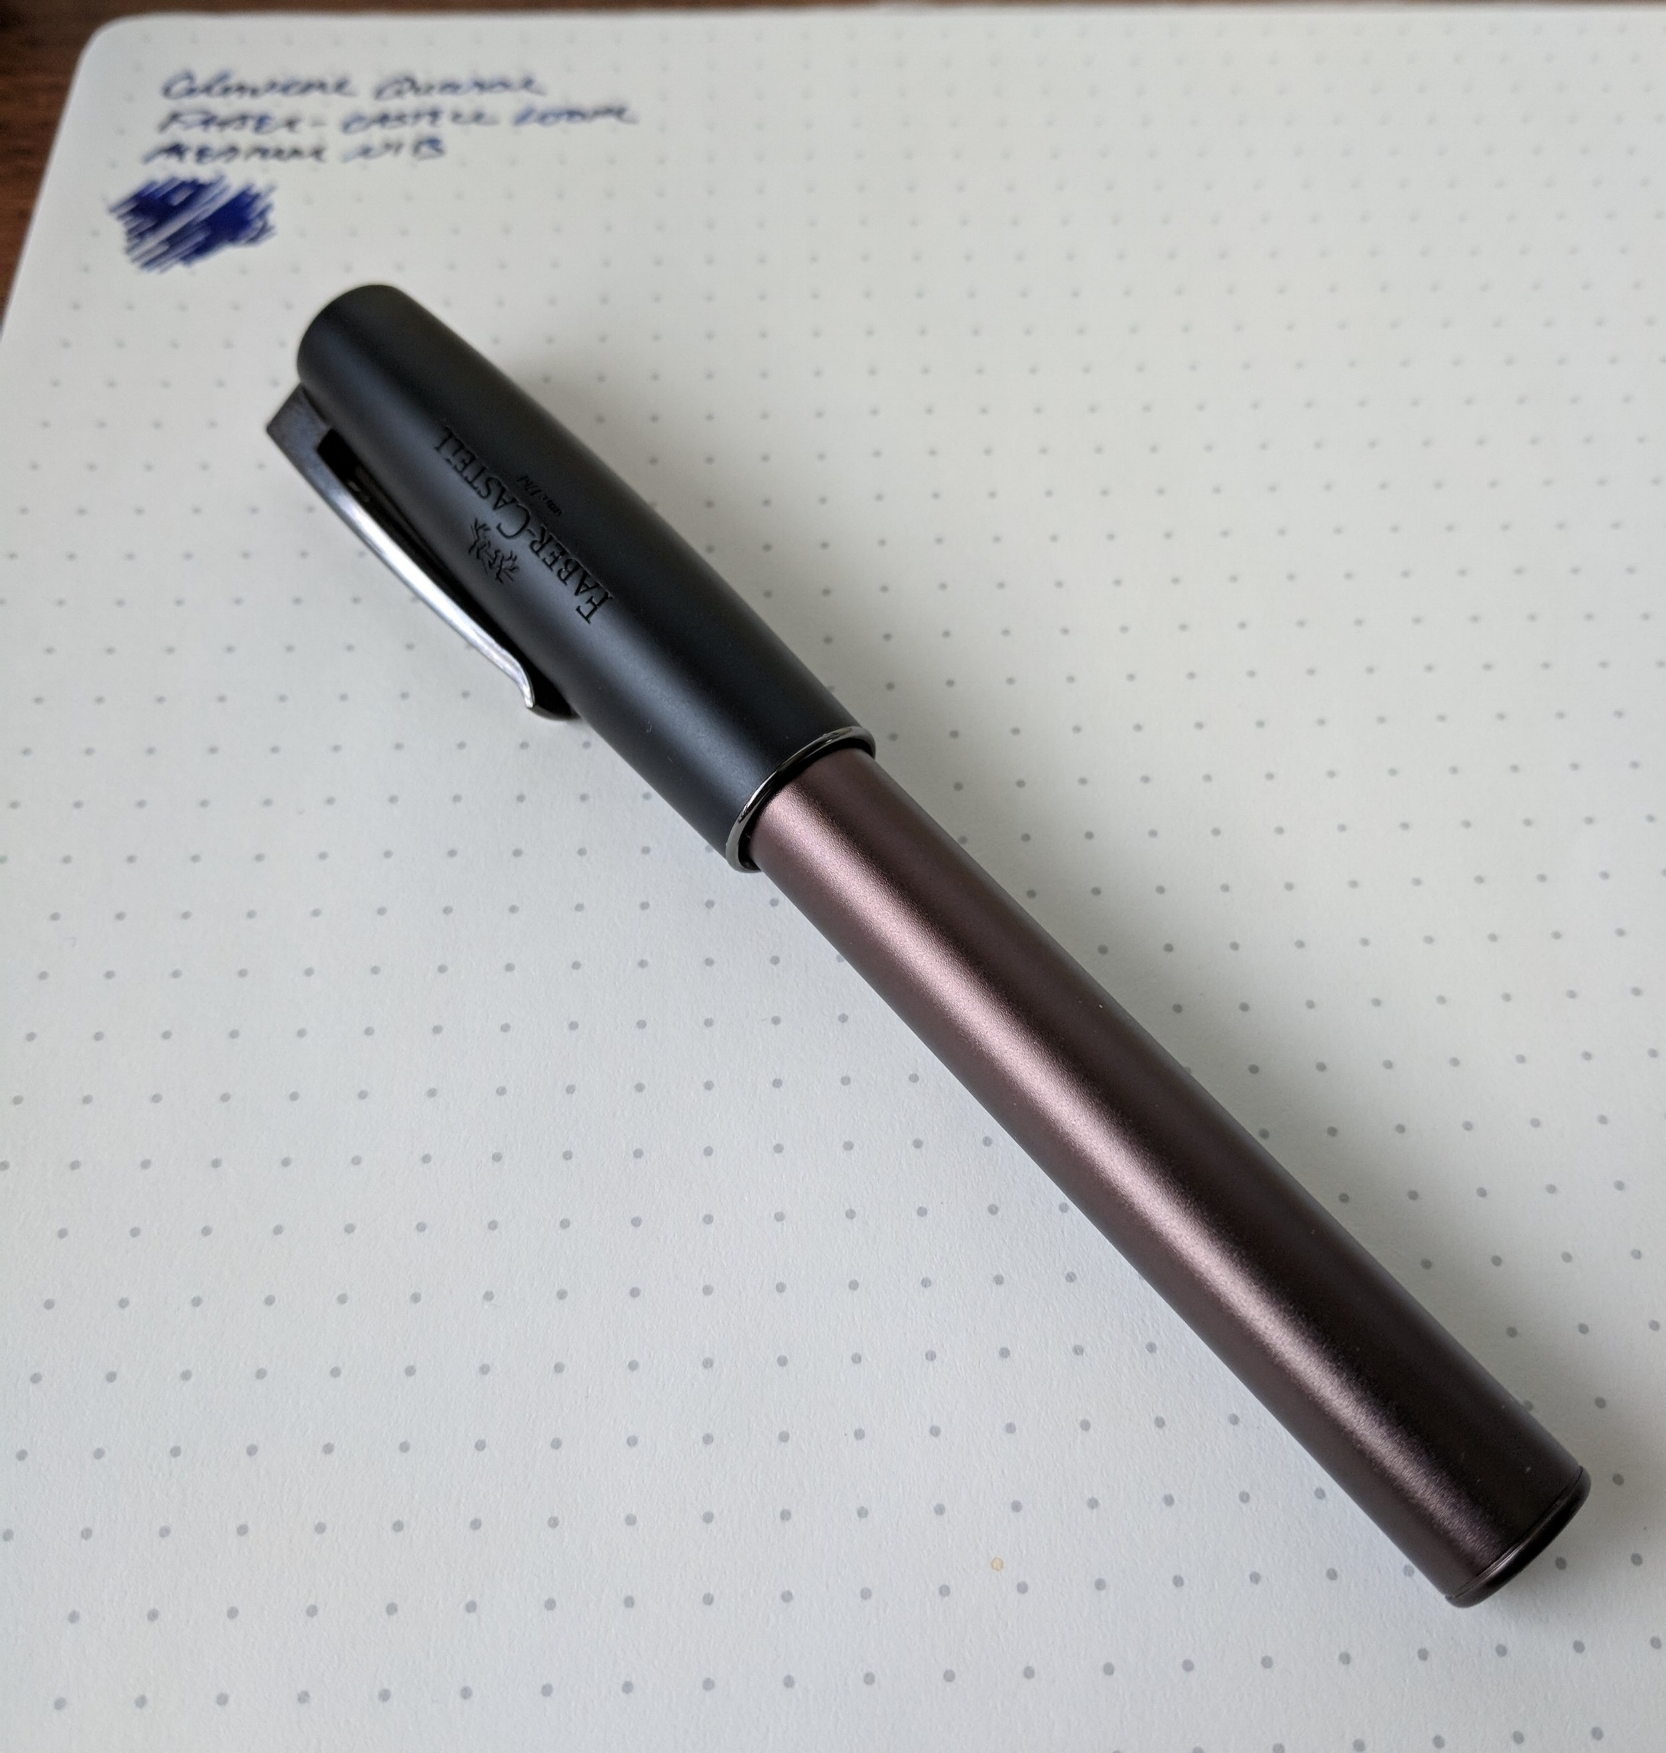 The Faber-Castell Loom that I actually took home with me was this matte version. I like both Gunmetal versions (matte and shiny), but this one spoke to me more.